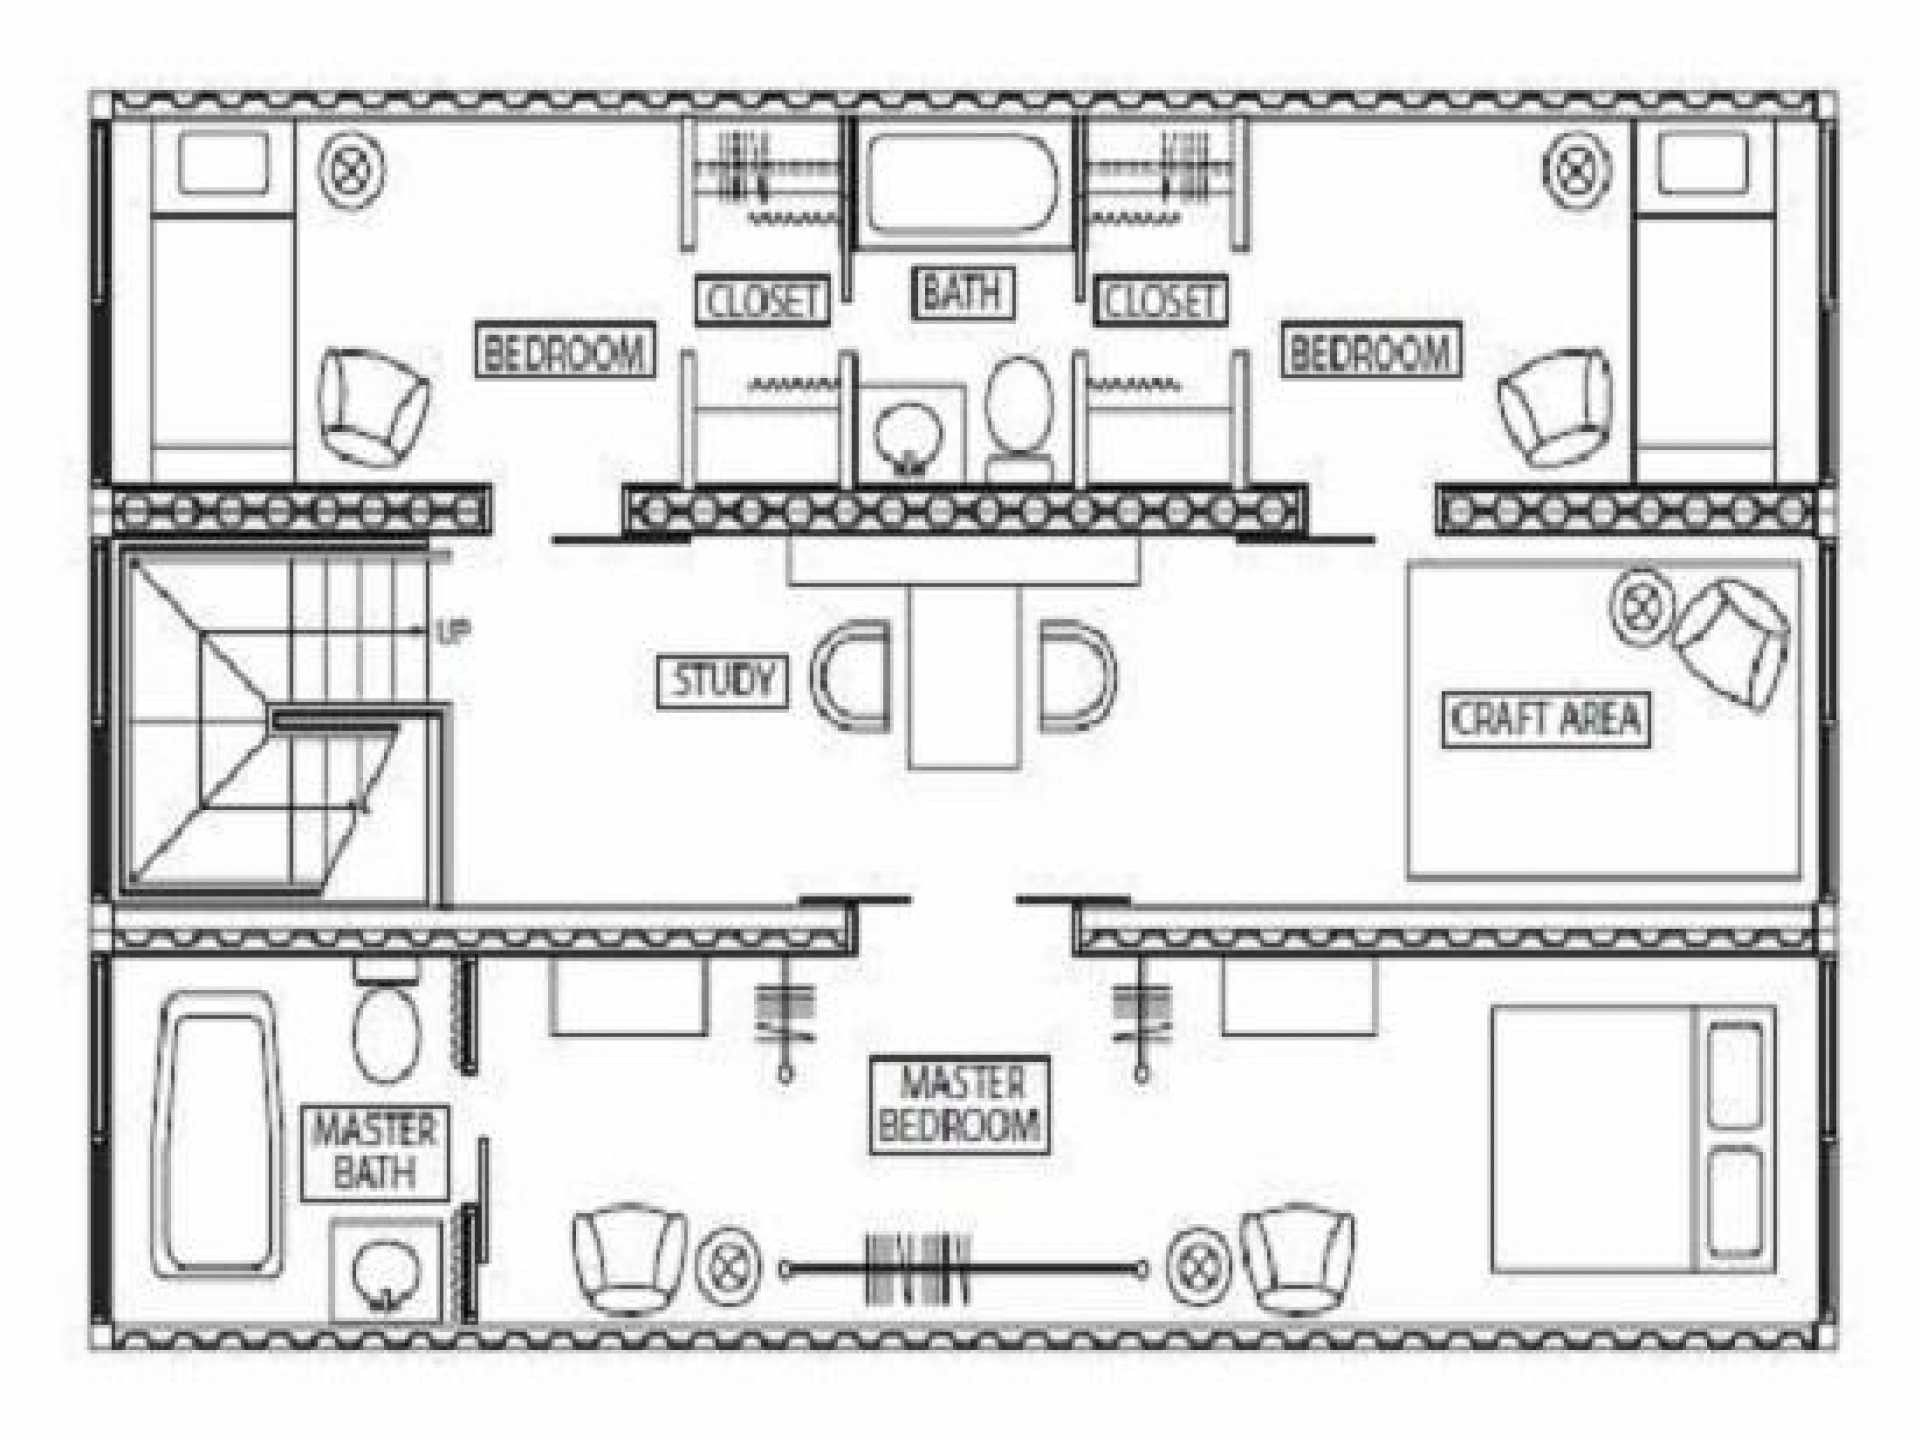 Shipping Container Home Plans Free Unique Shipping Container House Plans Cleancrew Of Shipping Container Home Designs Container House Building A Container Home